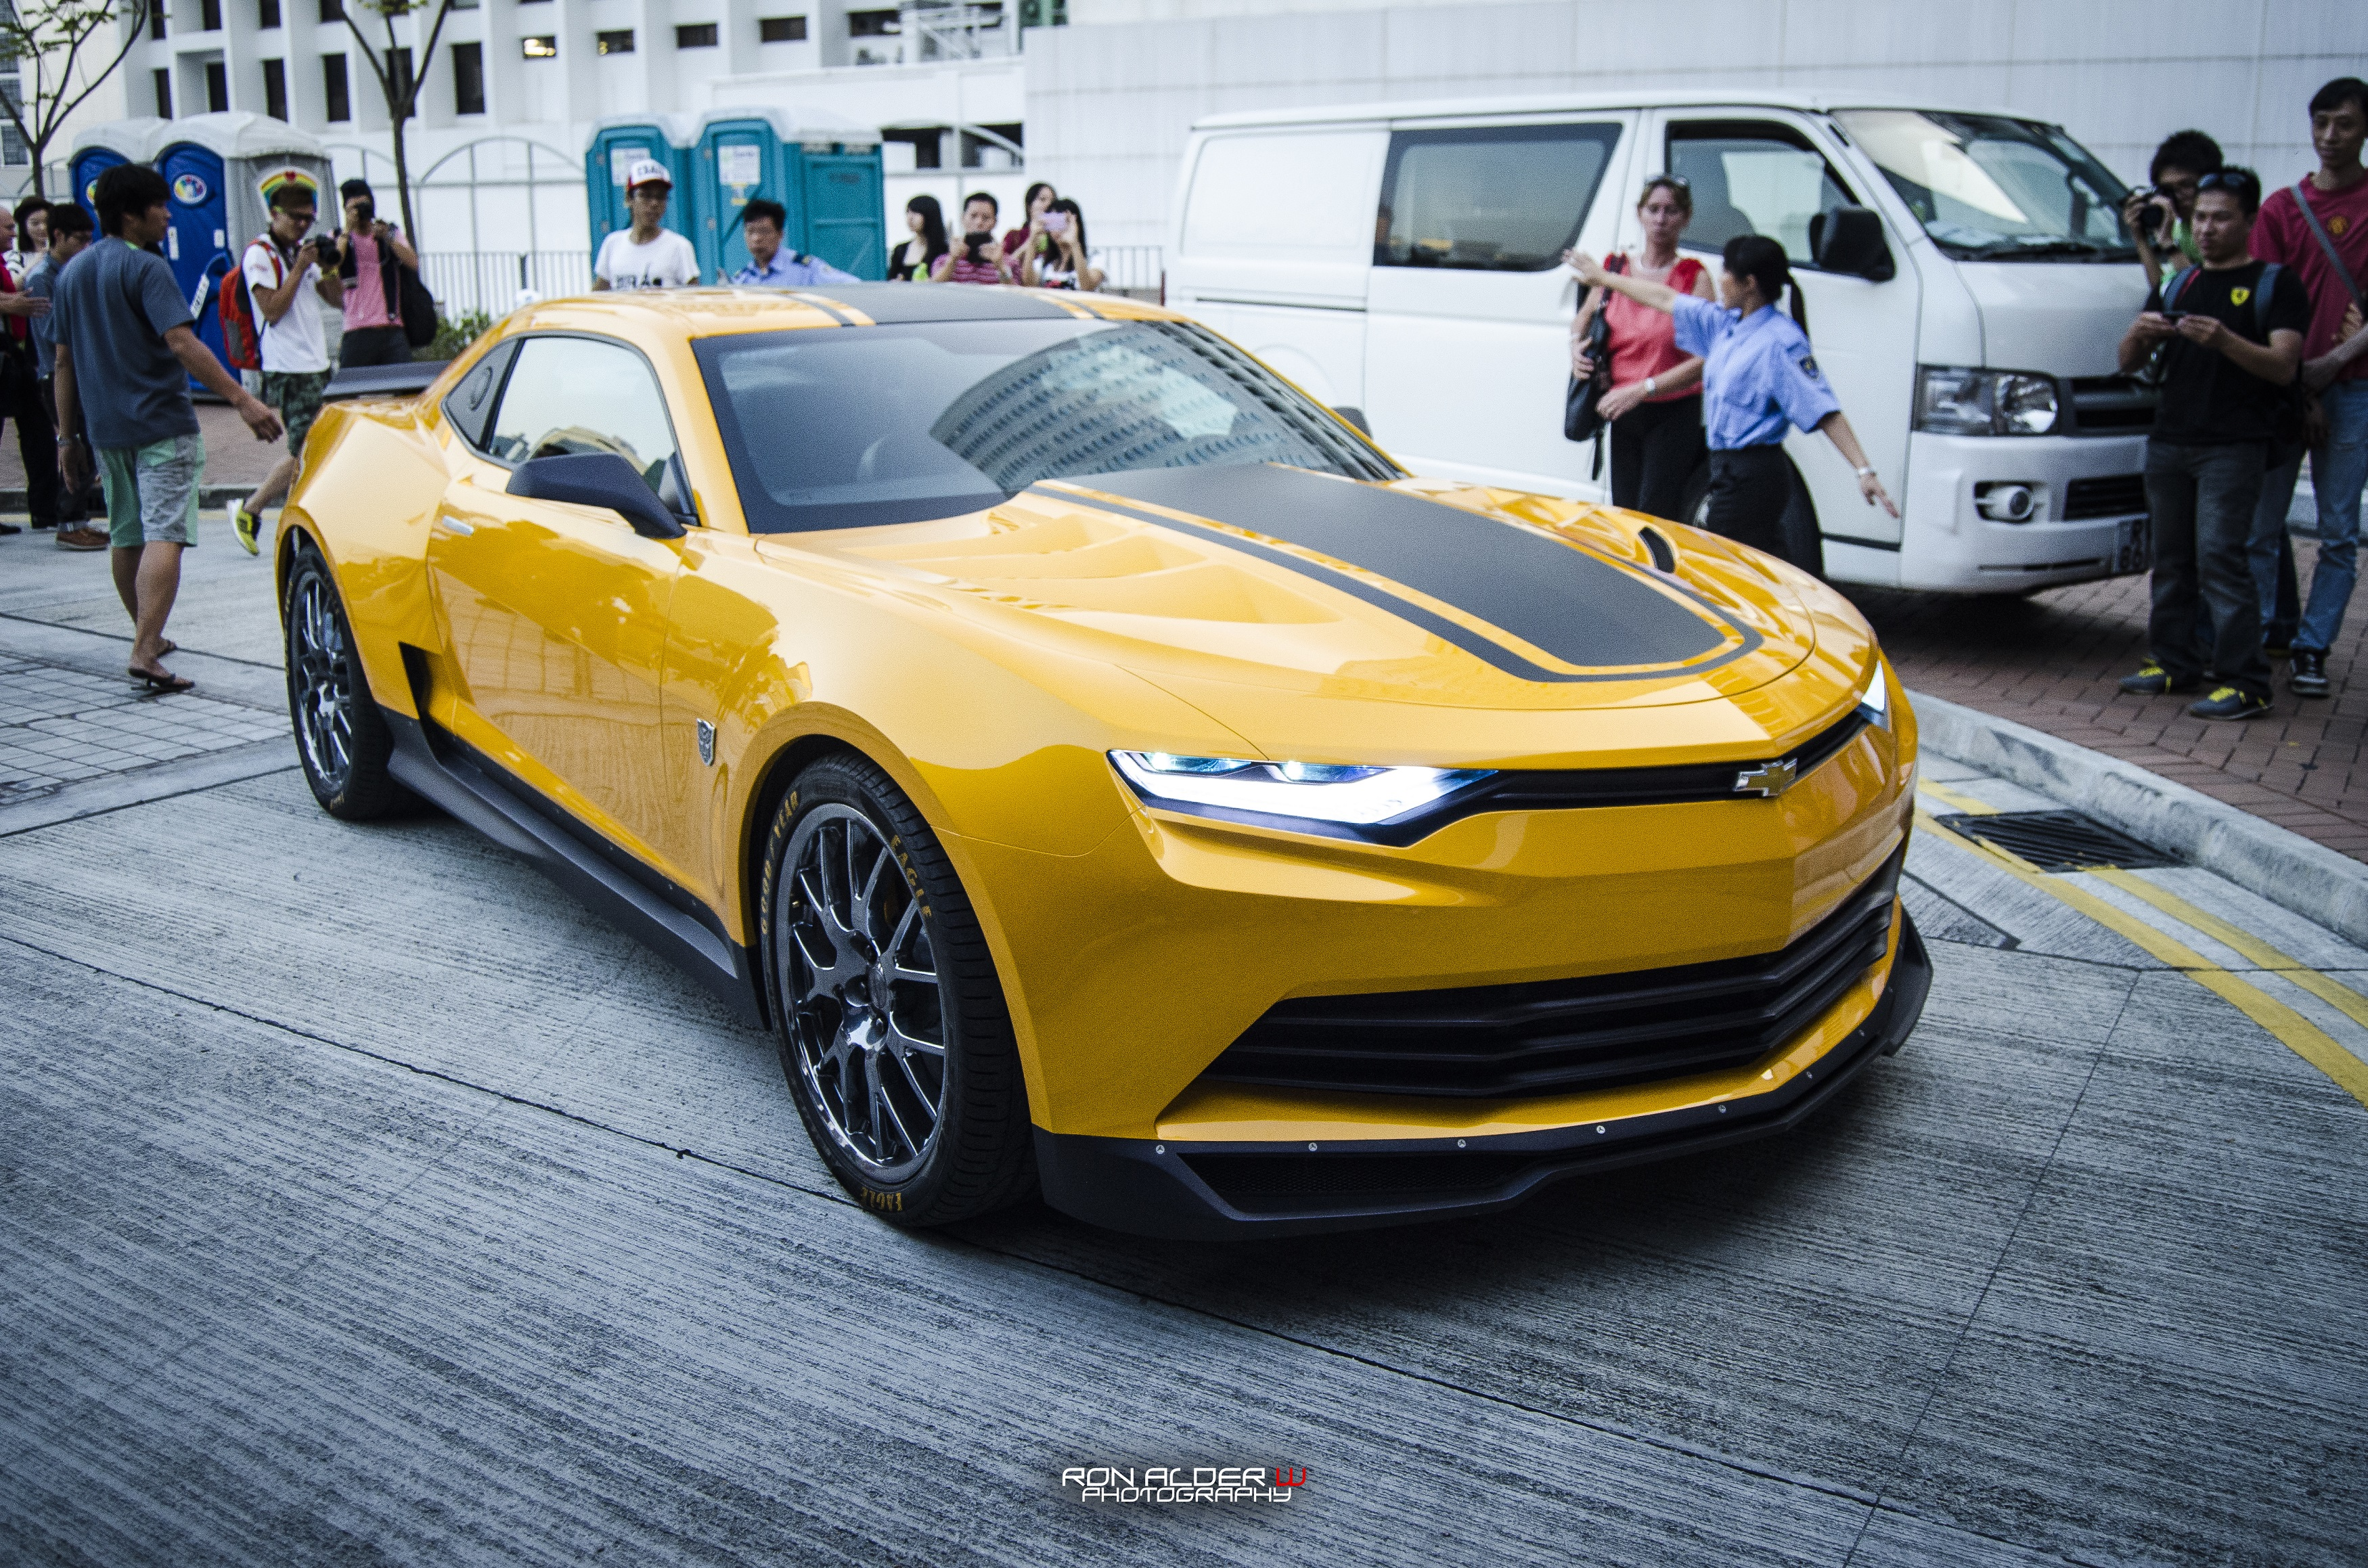 2014 chevrolet transformers 4 bumblebee camaro gallery 529621 top speed. Black Bedroom Furniture Sets. Home Design Ideas